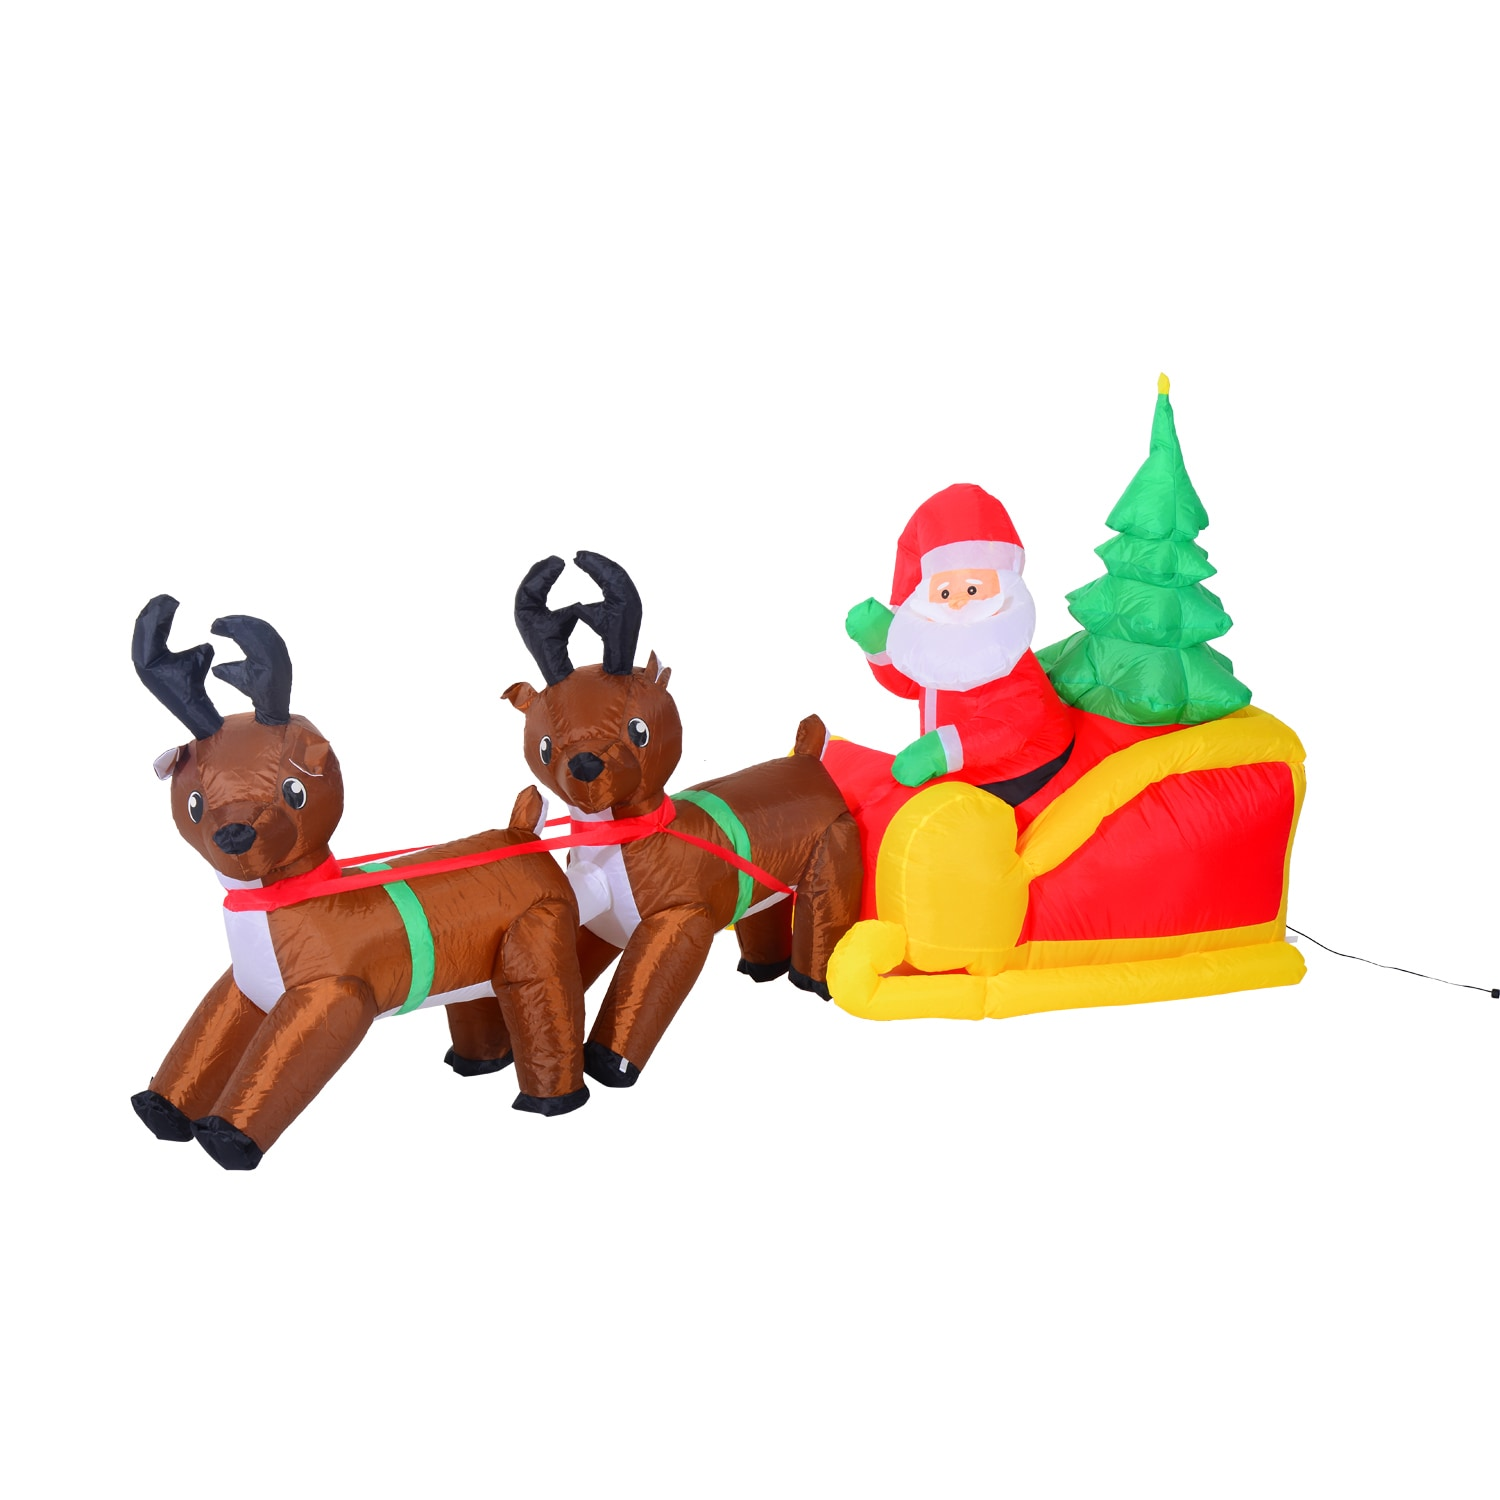 7 Foot Inflatable Led Lit Christmas Santa And Reindeer Lawn Decoration